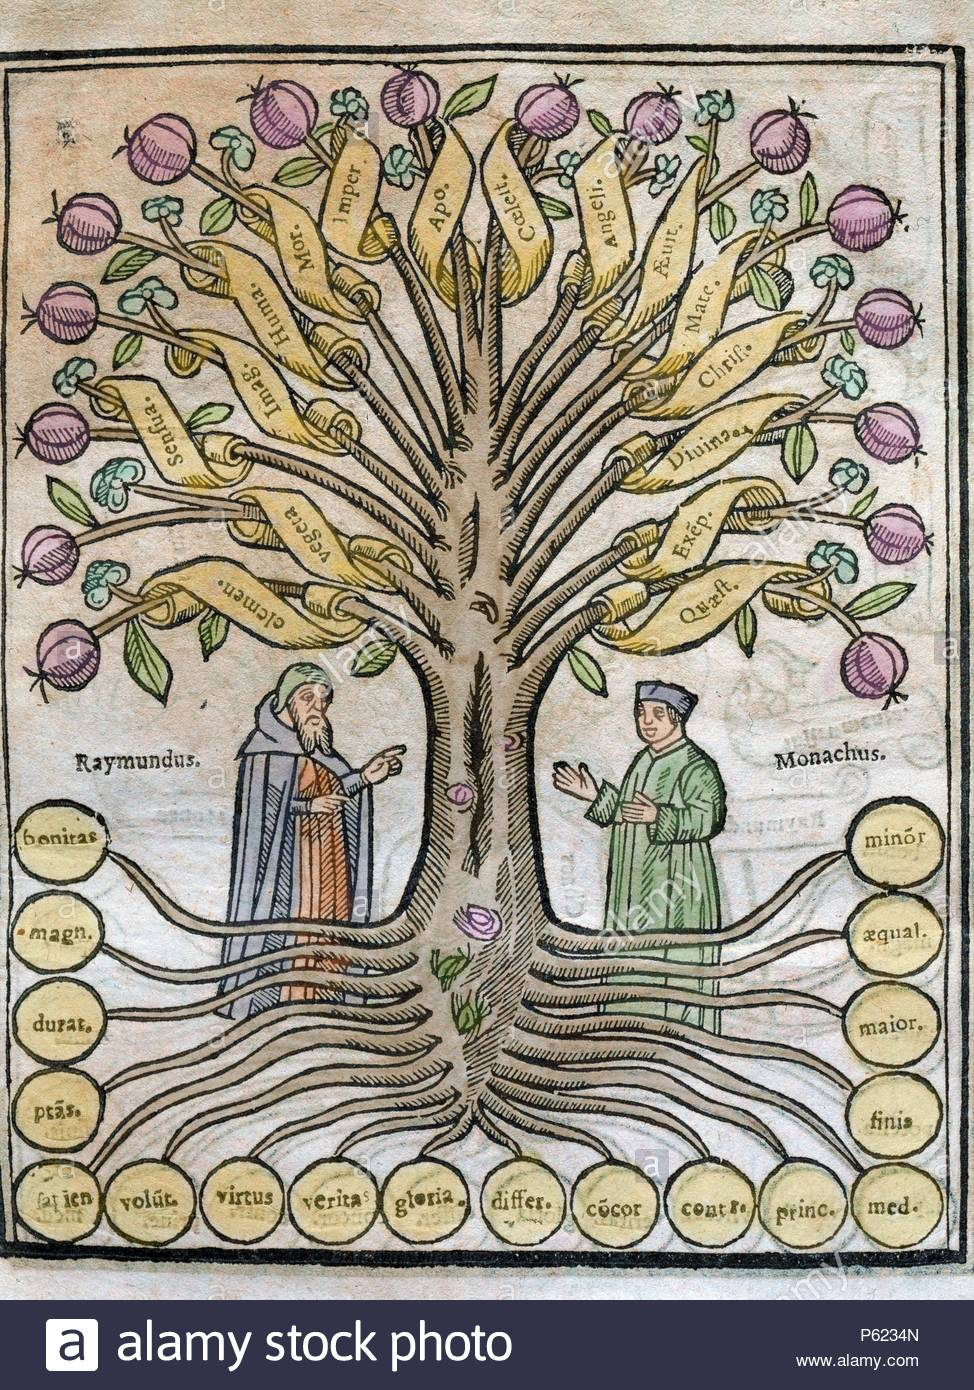 """Llull, Ramon (1233/1235-1315/1316).  Majorcan writer and philosopher. Colored engraving of """"Arbor Scientiae"""" (Tree of Science) published in Leiden in 1635. Stock Photo"""